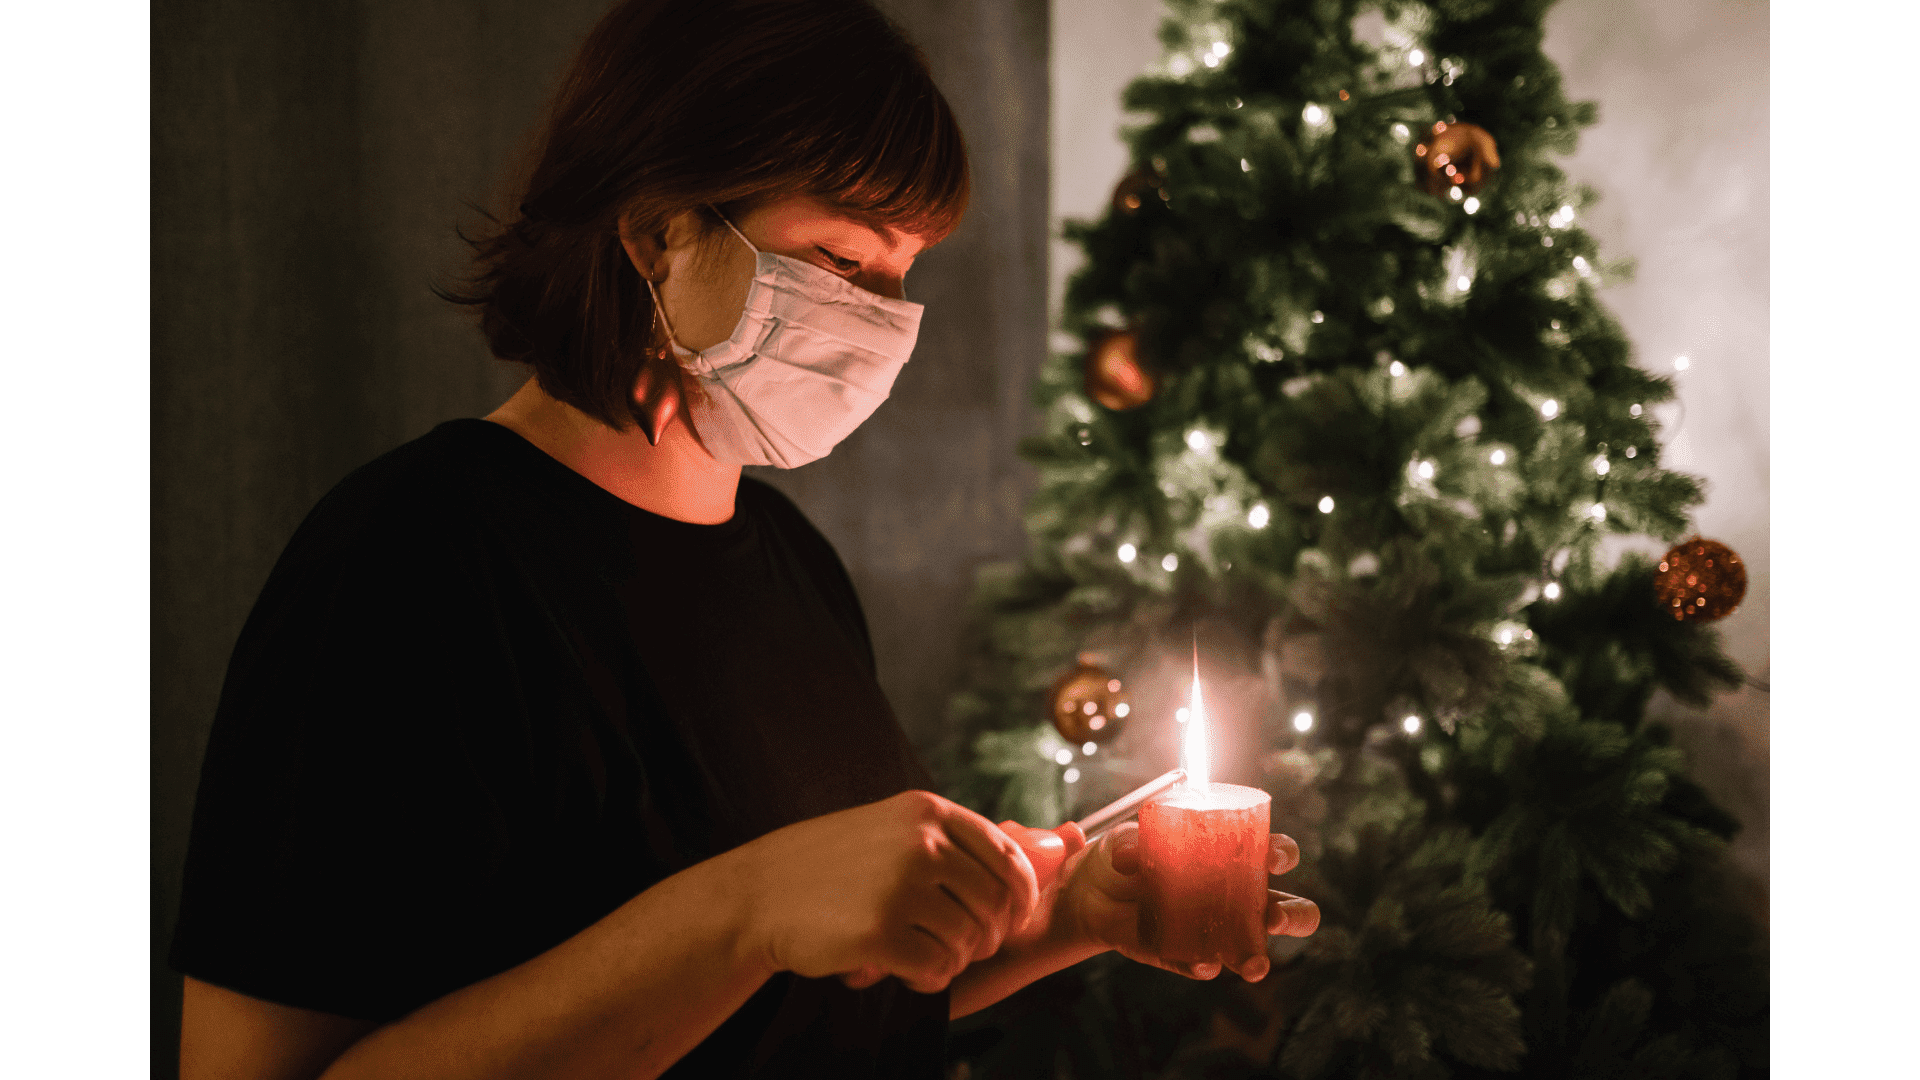 Woman in face mask lighting a candle in front of a Christmas tree